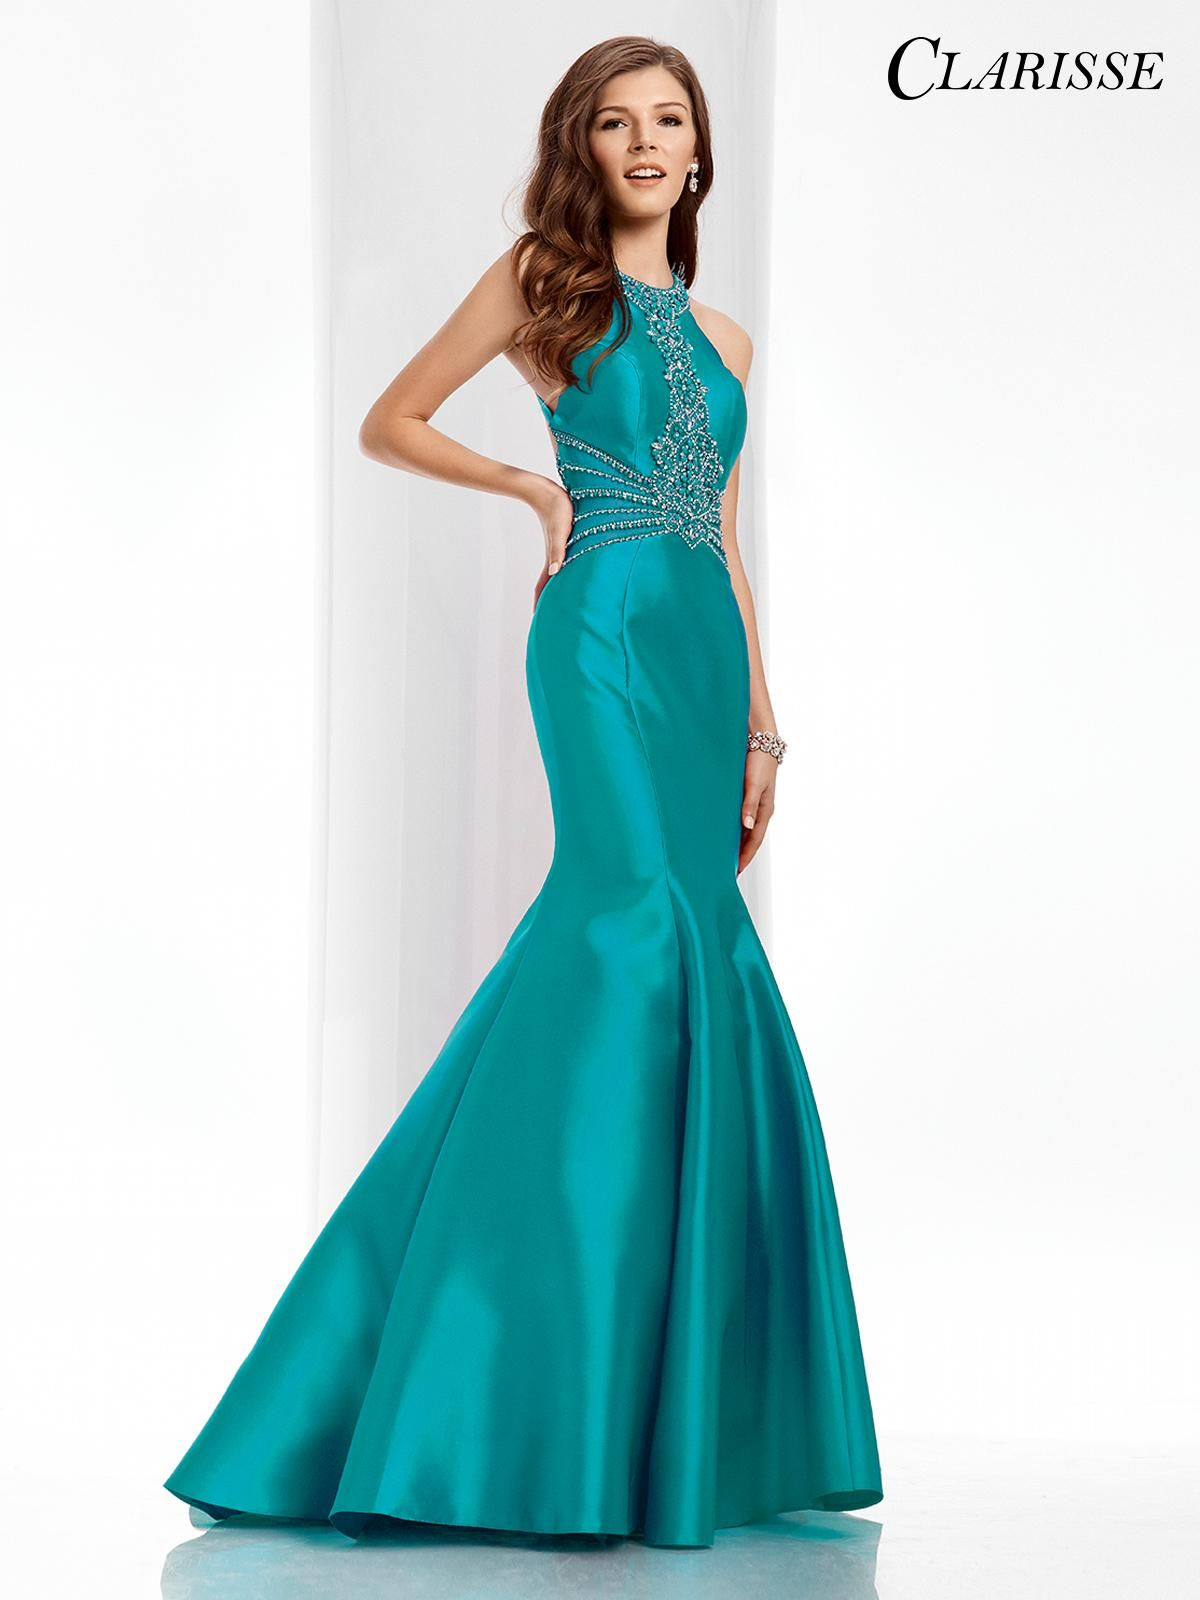 Clarisse 2017 Mermaid Prom Dress Style 3139. Make a statement in ...